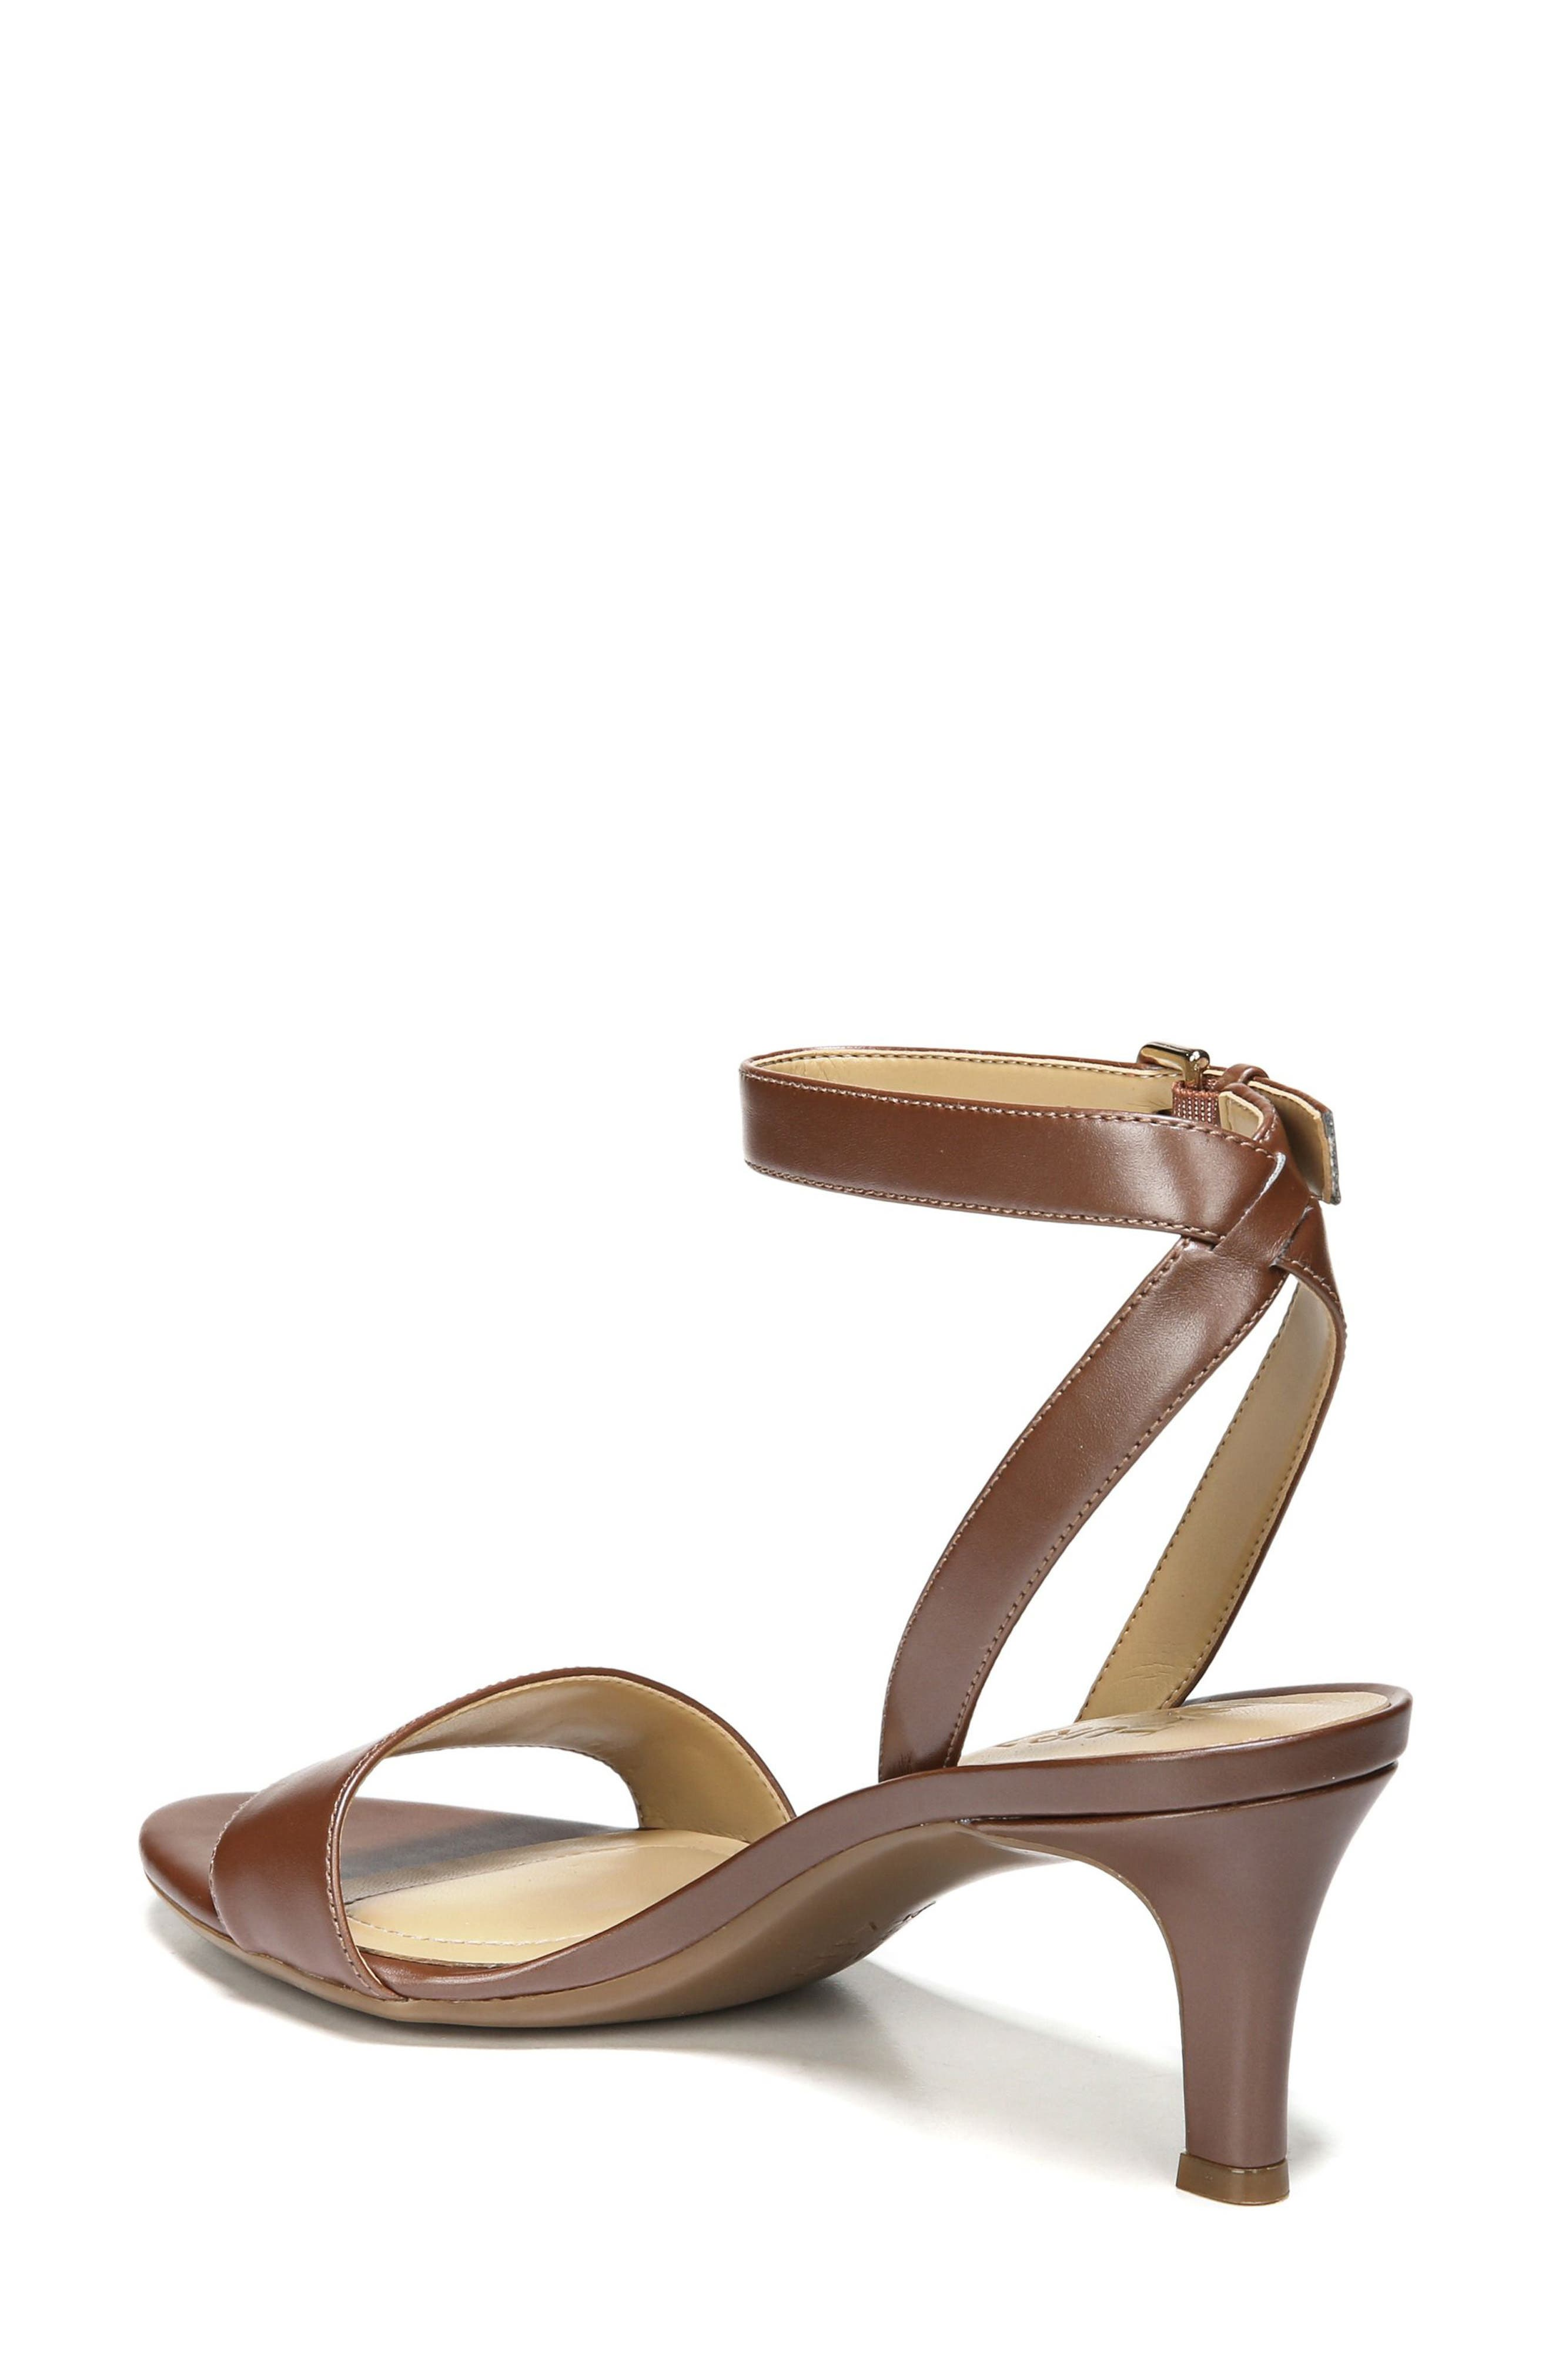 Tinda Sandal,                             Alternate thumbnail 12, color,